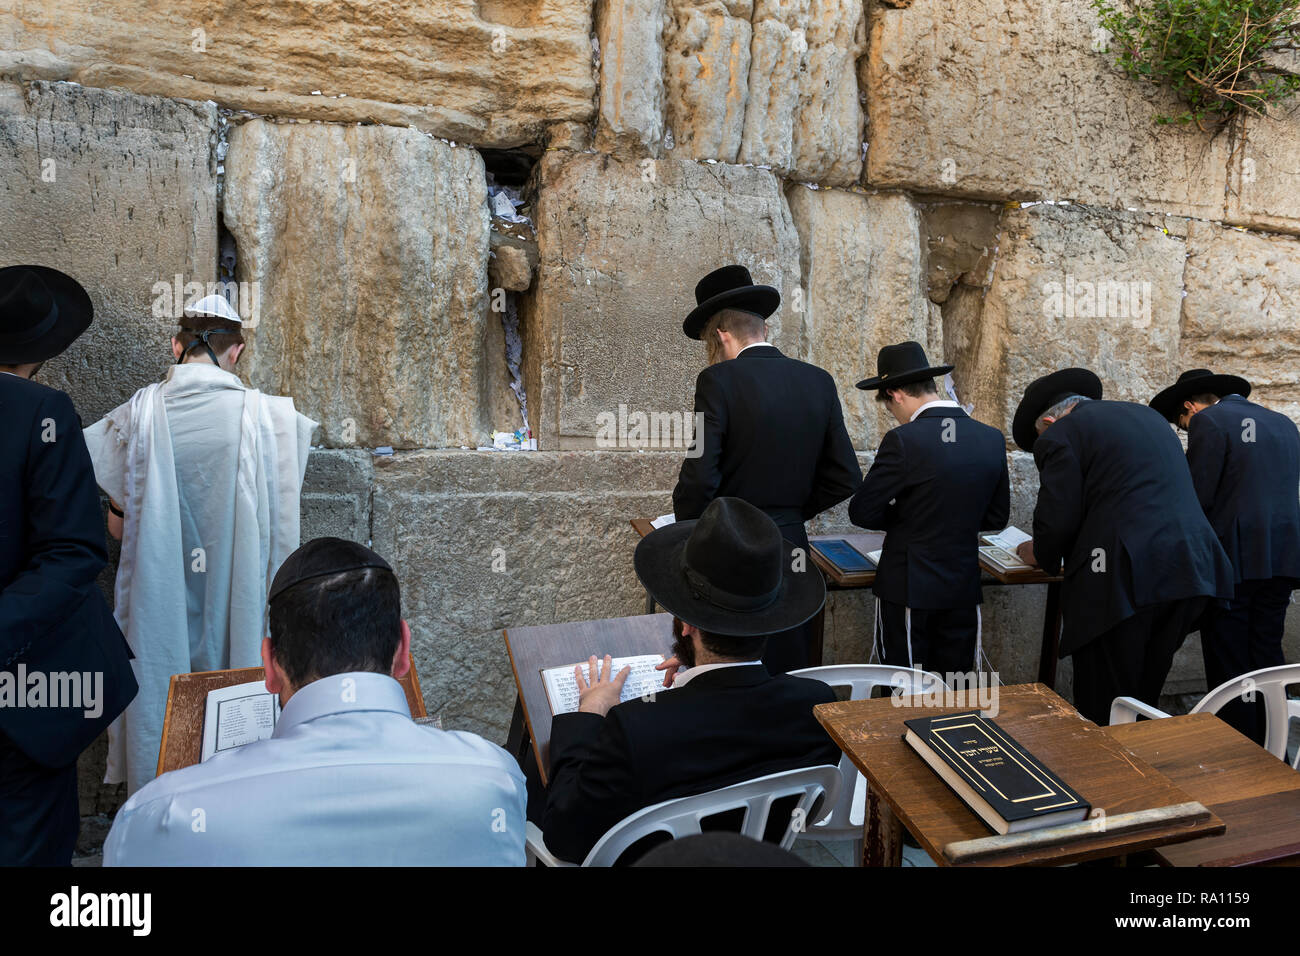 Orthodox Jews praying at the Western Wall in Jerusalem. Israel - Stock Image